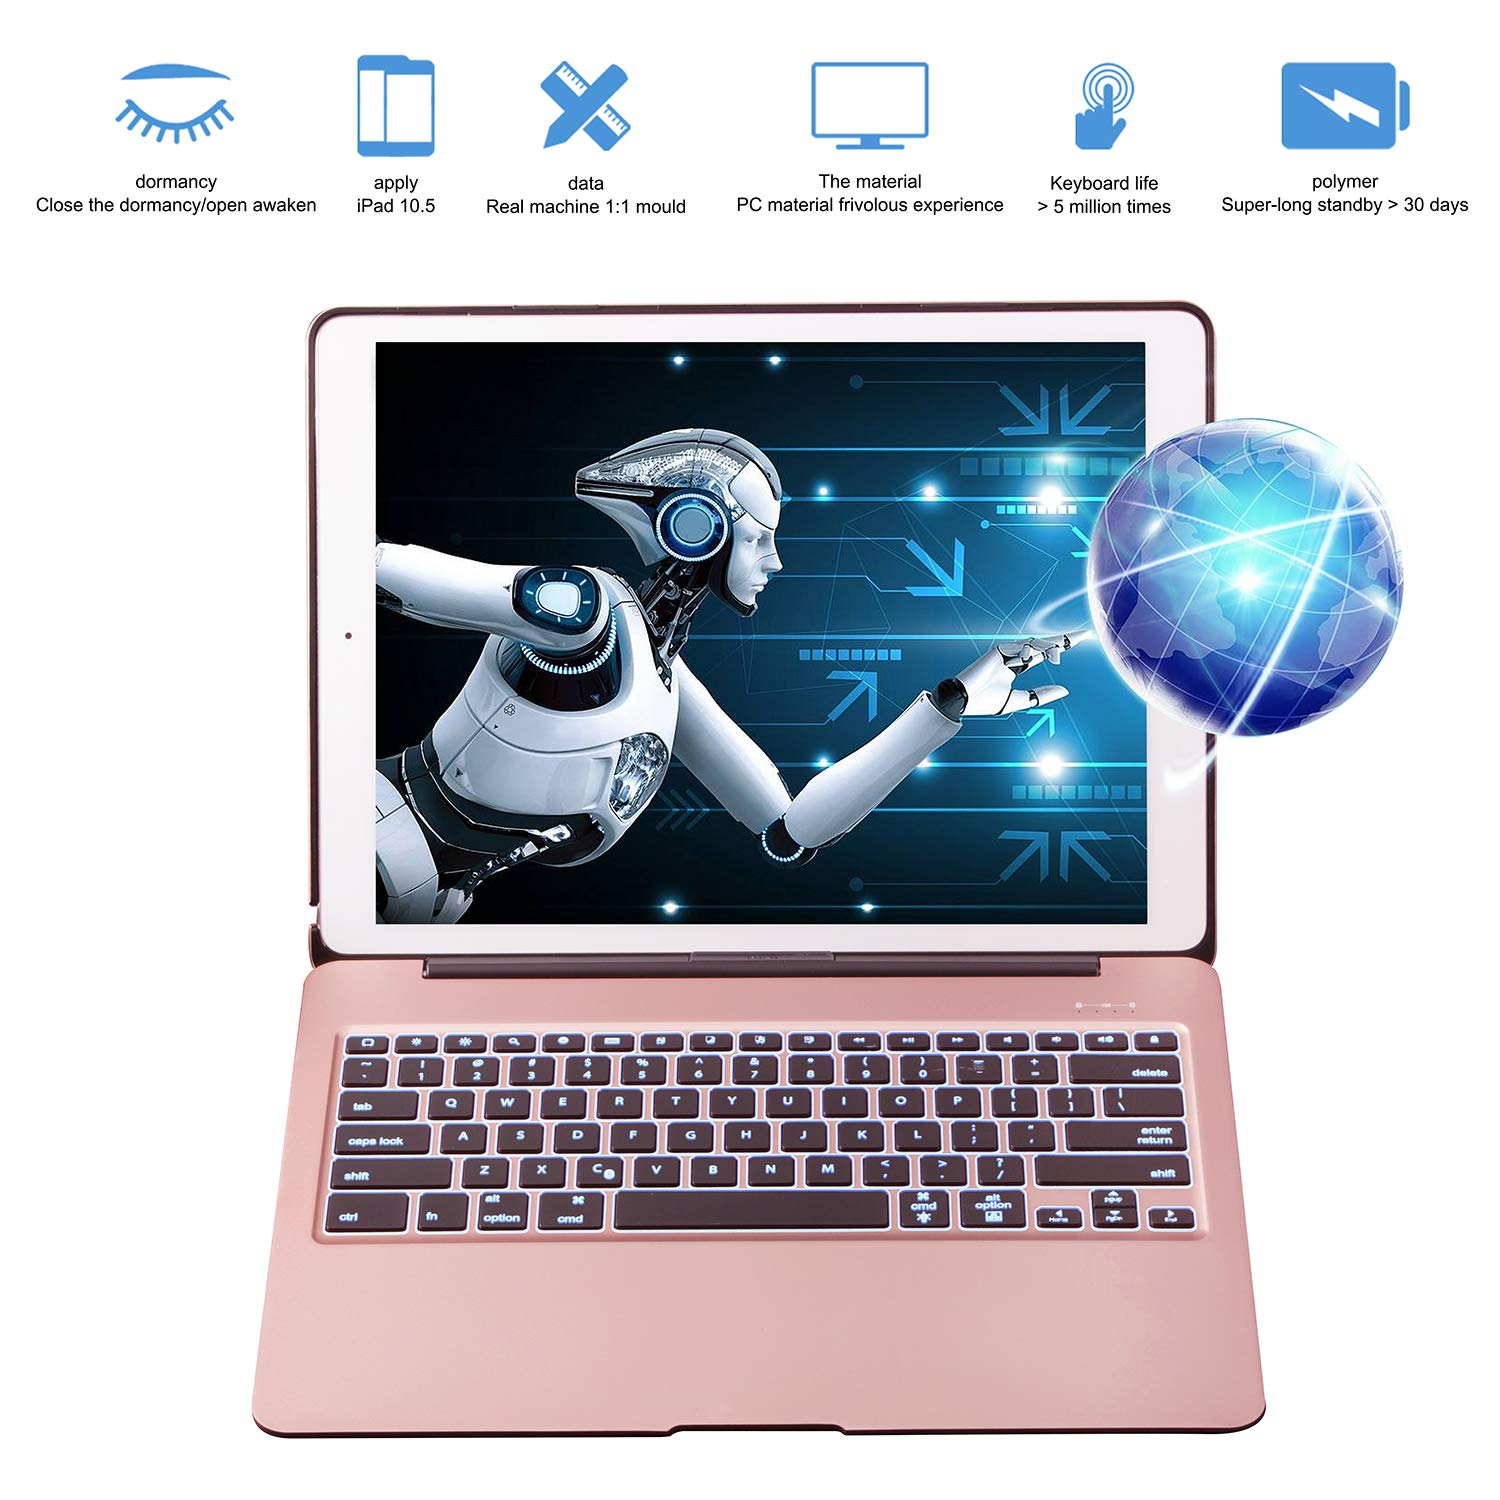 Keyboard Case for iPad Pro 12.9 inch(Not fit 2018), VANKY Wireless Slim Aluminium iPad Protective Case iPad Keyboard with 7 Colors LED Backlit & Auto Wake/Sleep Fit iPad Pro 12.9 (Rose Gold) by VANKY (Image #7)